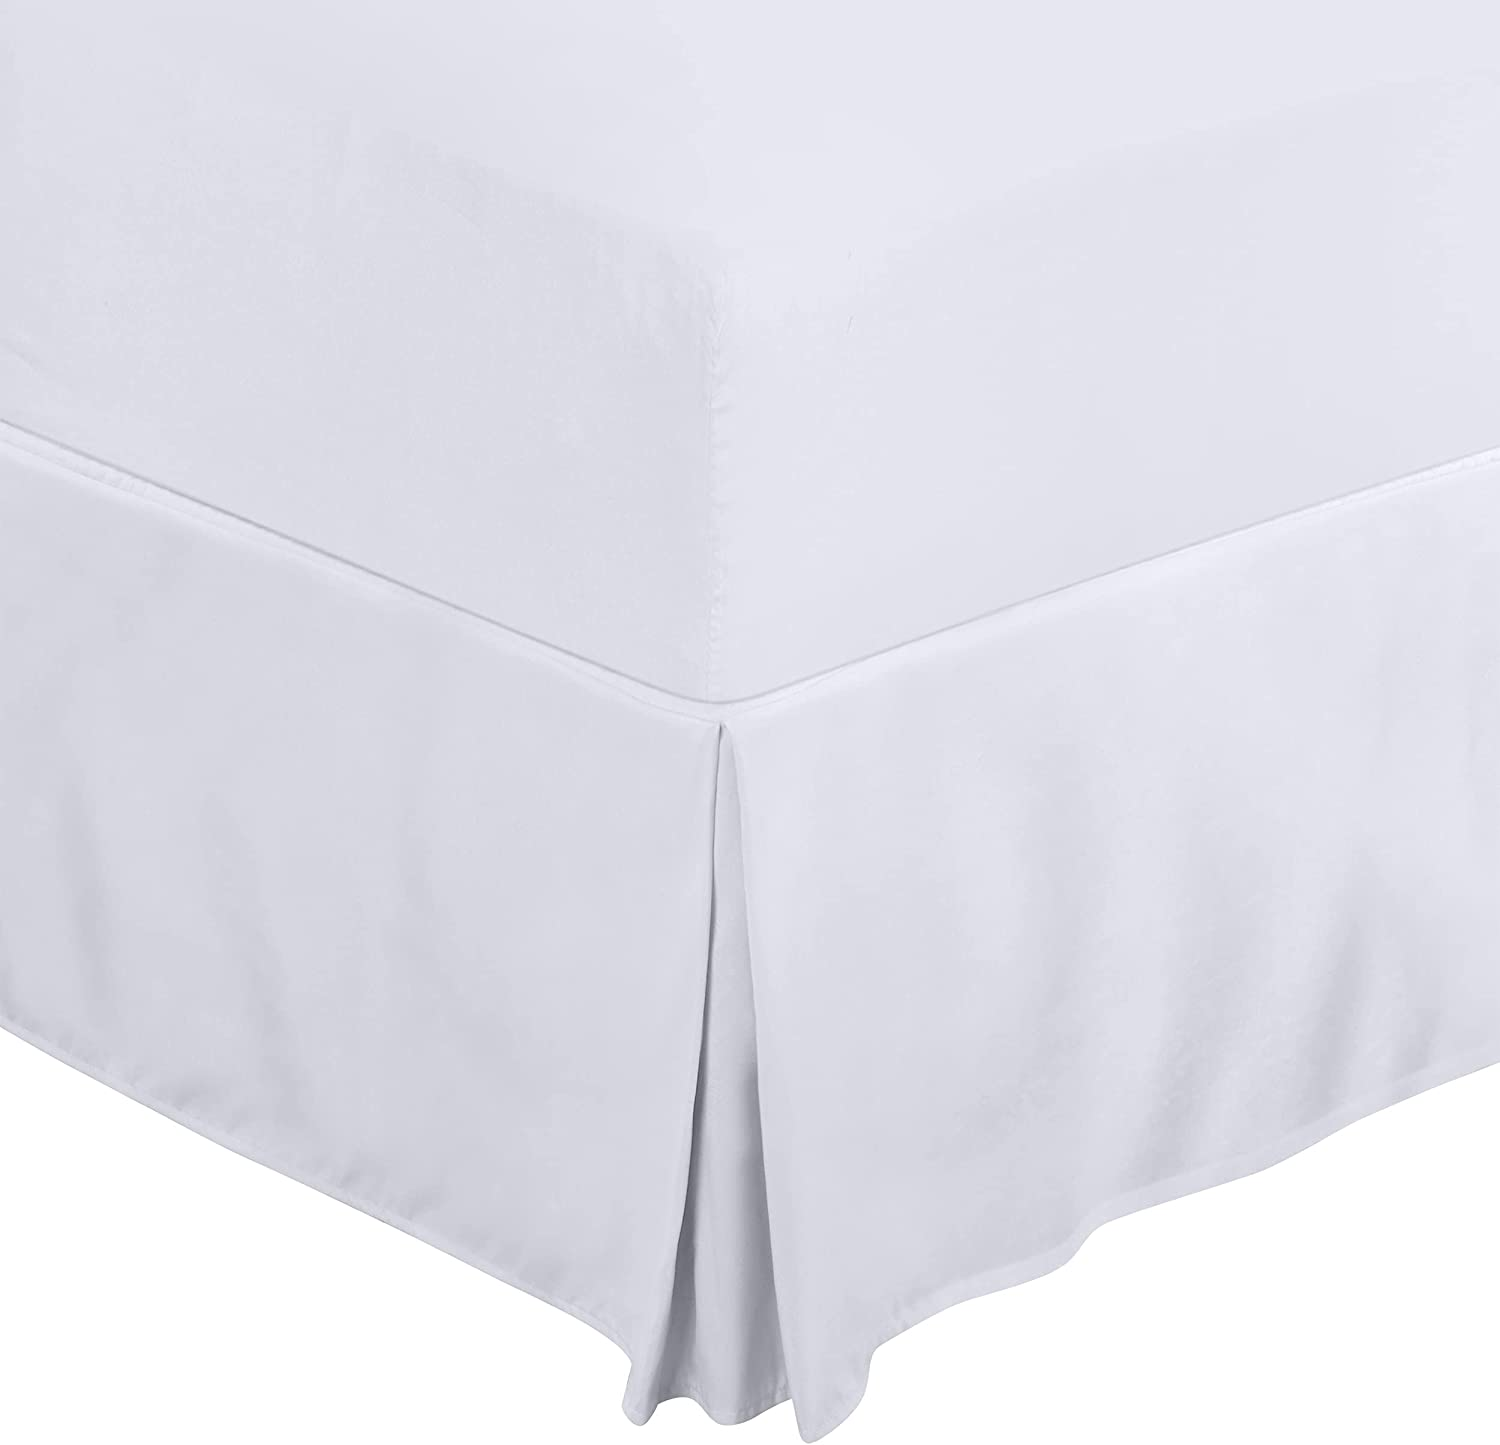 Utopia Bedding Twin Bed Skirt - Soft Quadruple Pleated Ruffle - Easy Fit with 15 Inch Tailored Drop - Hotel Quality, Shrinkage and Fade Resistant (Twin, White): Home & Kitchen